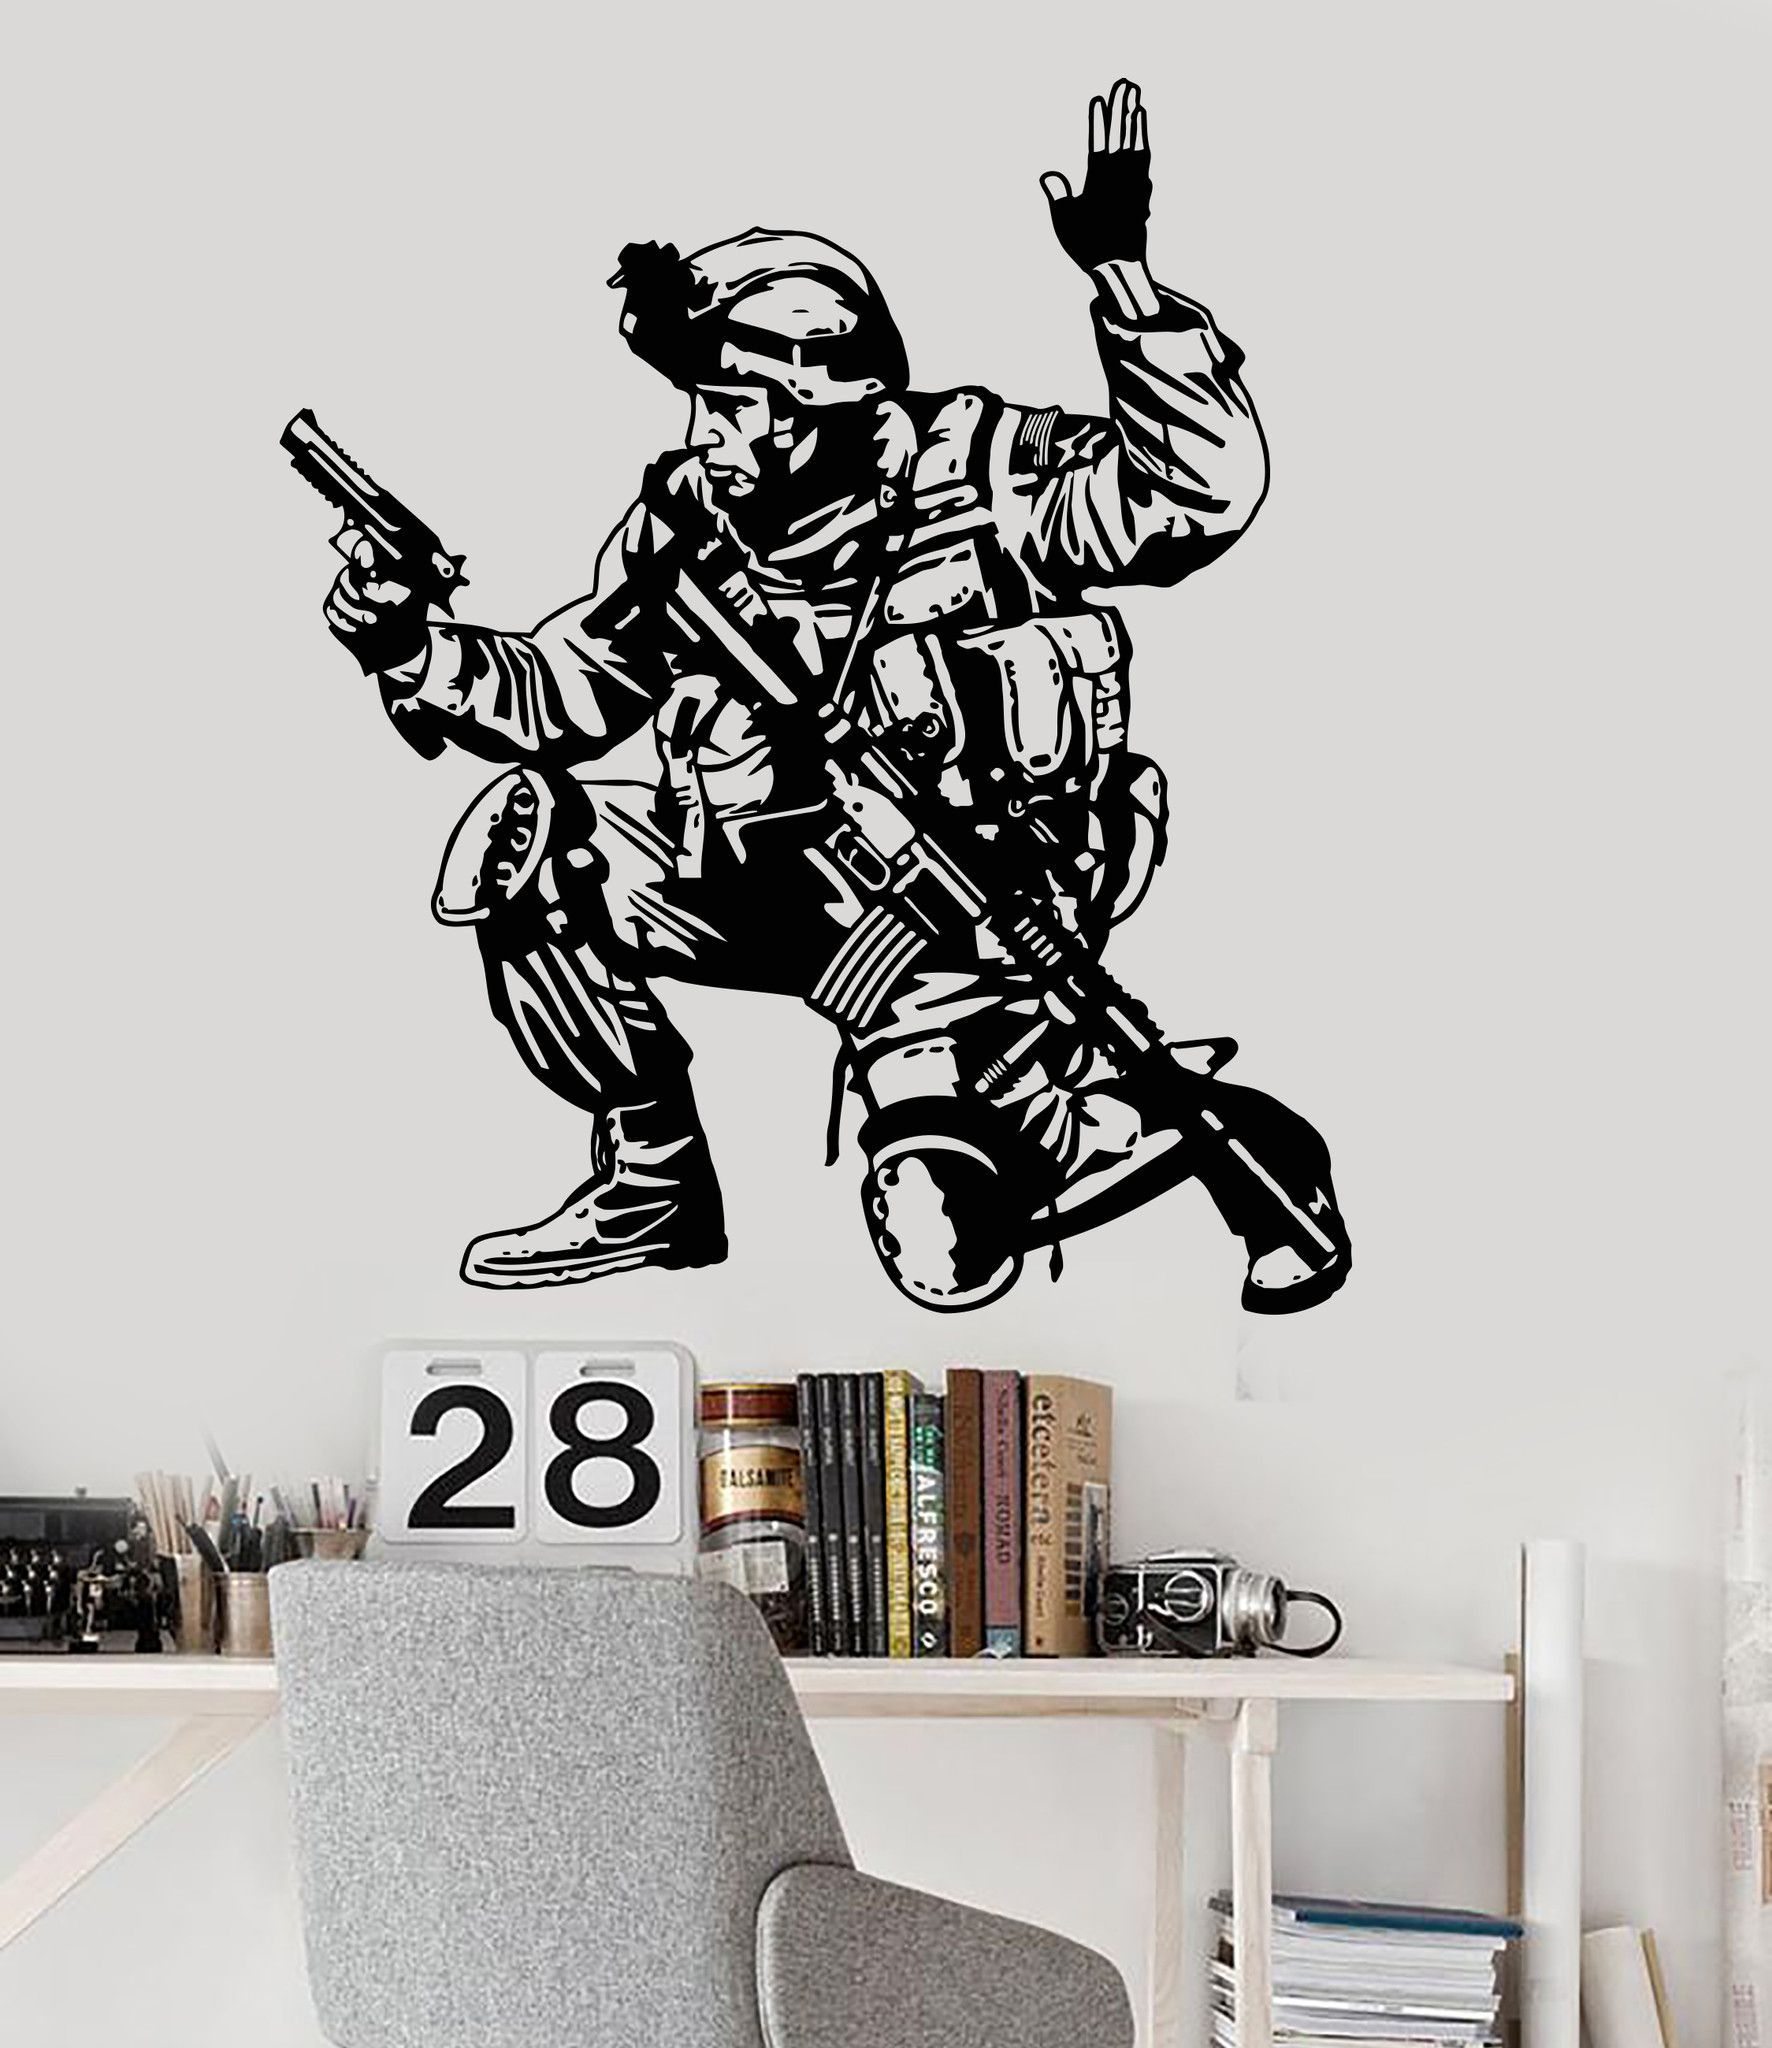 Vinyl Wall Decal Soldier Military War Boys Room Special Forces Stickers Unique Gift 097ig Vinyl Wall Decals Vinyl Wall Wall Decals [ 2048 x 1772 Pixel ]